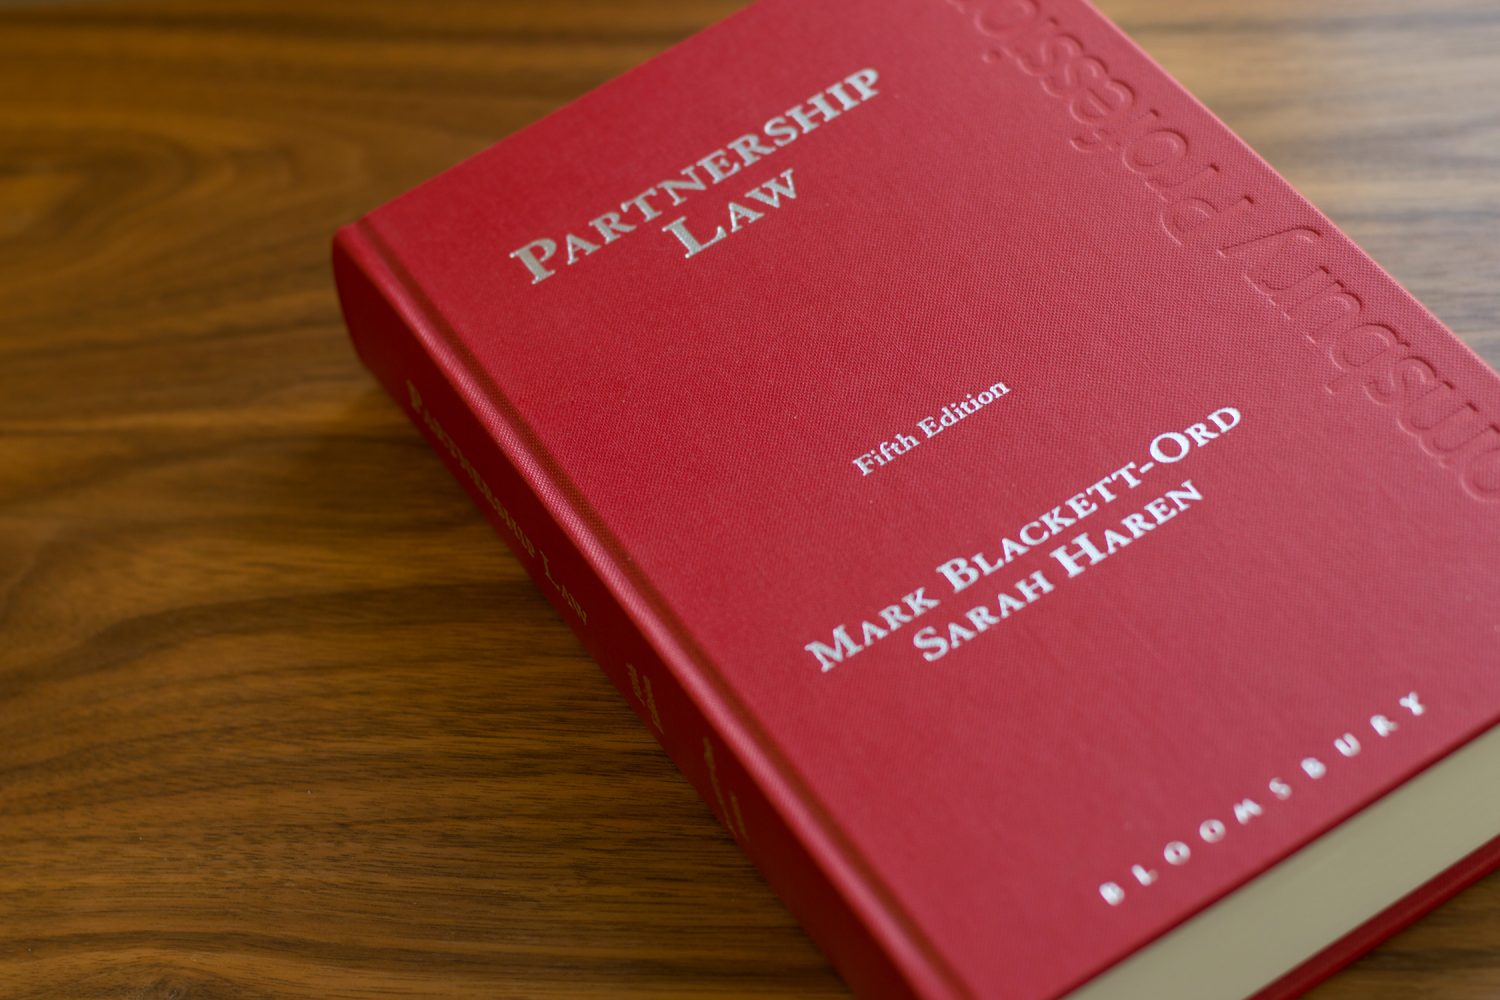 Partnership Law - Mark Blackett-Ord & Sarah Haren